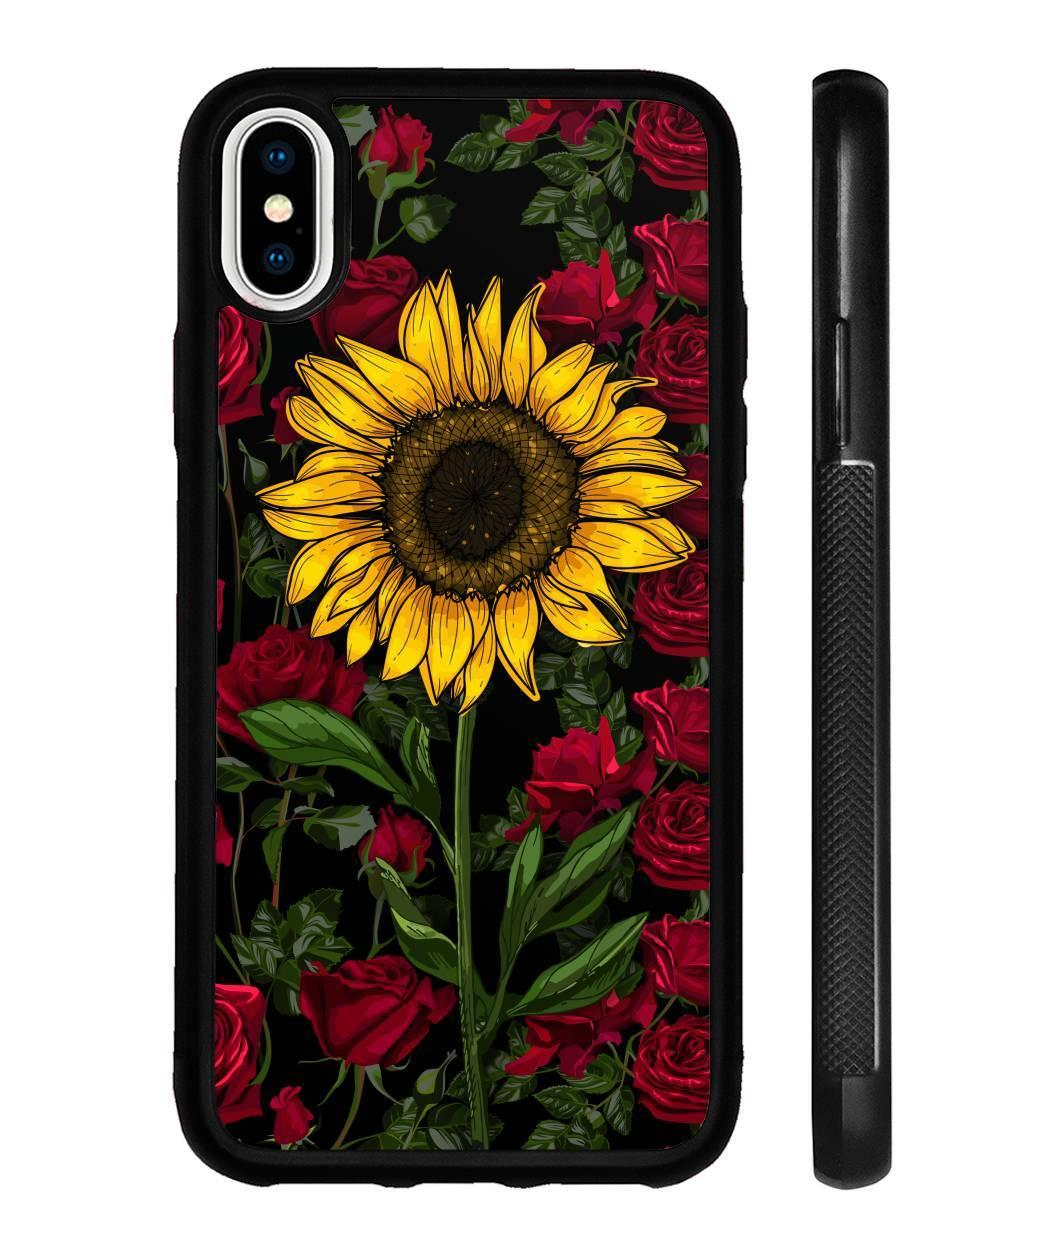 Rose sunflower phone case